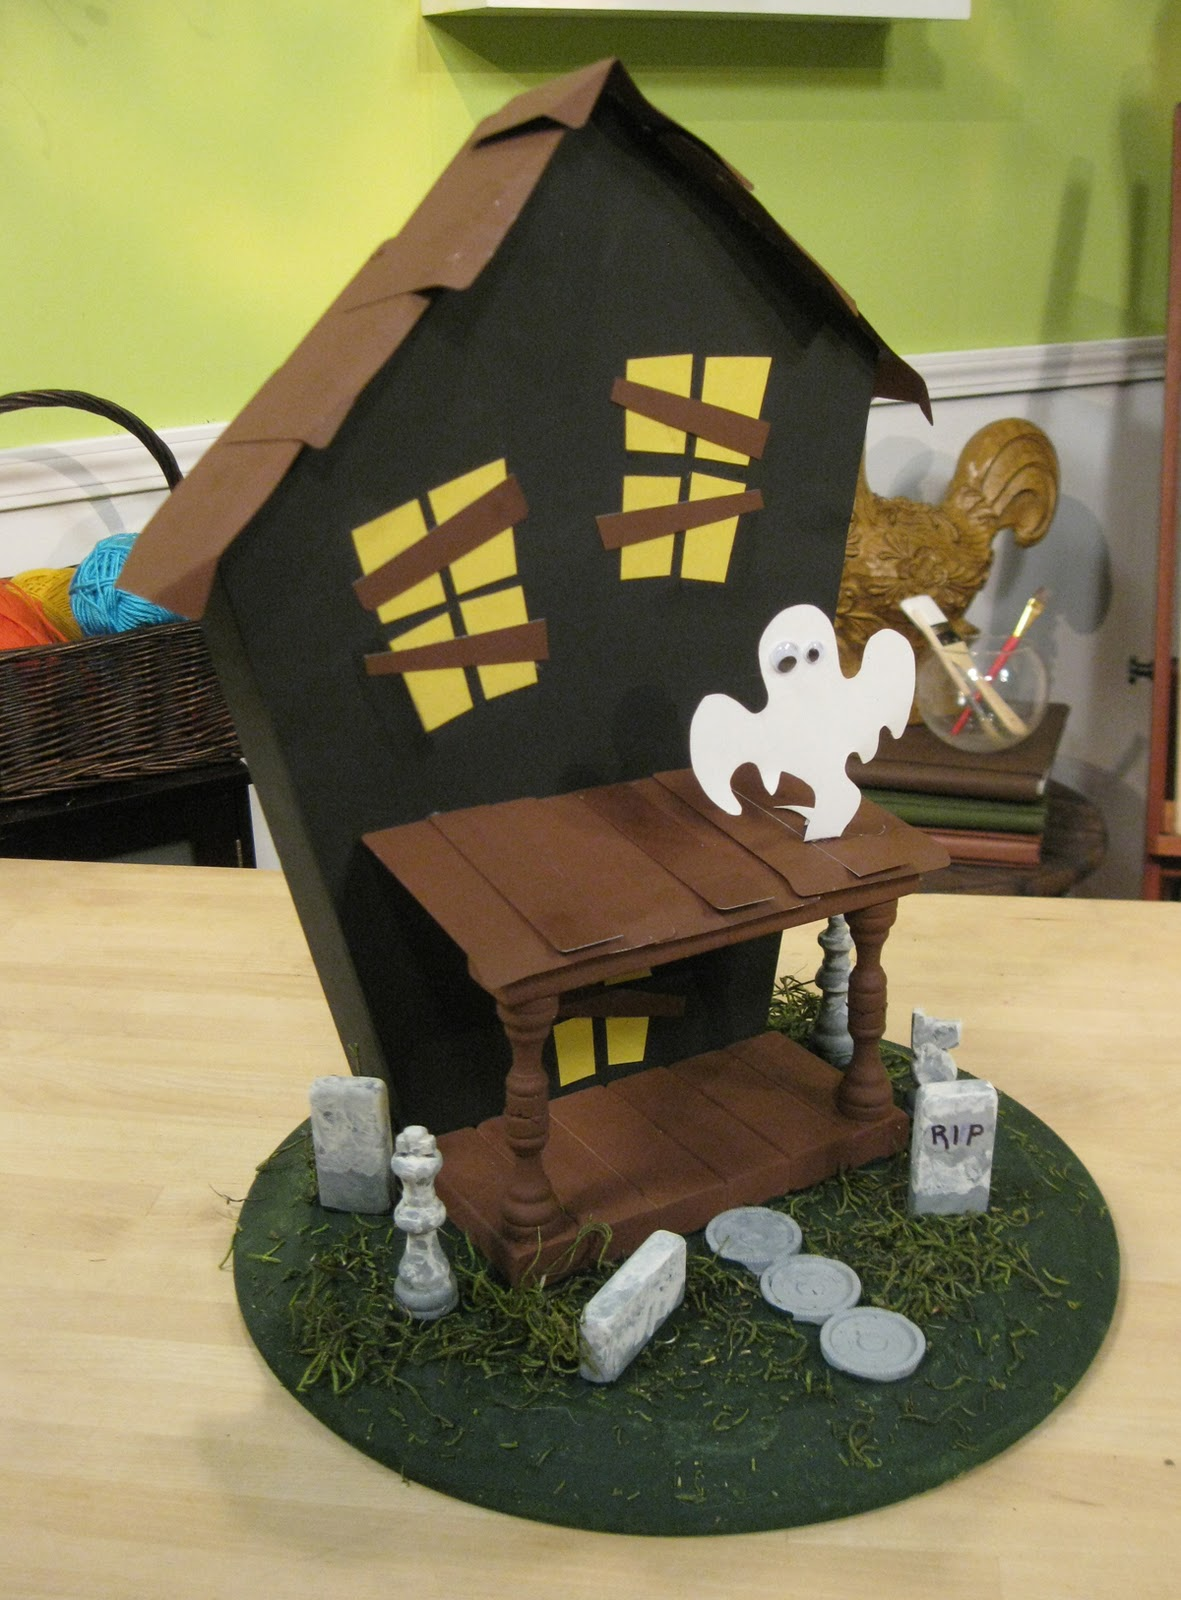 dave lowe design the blog 25 days til halloween game board